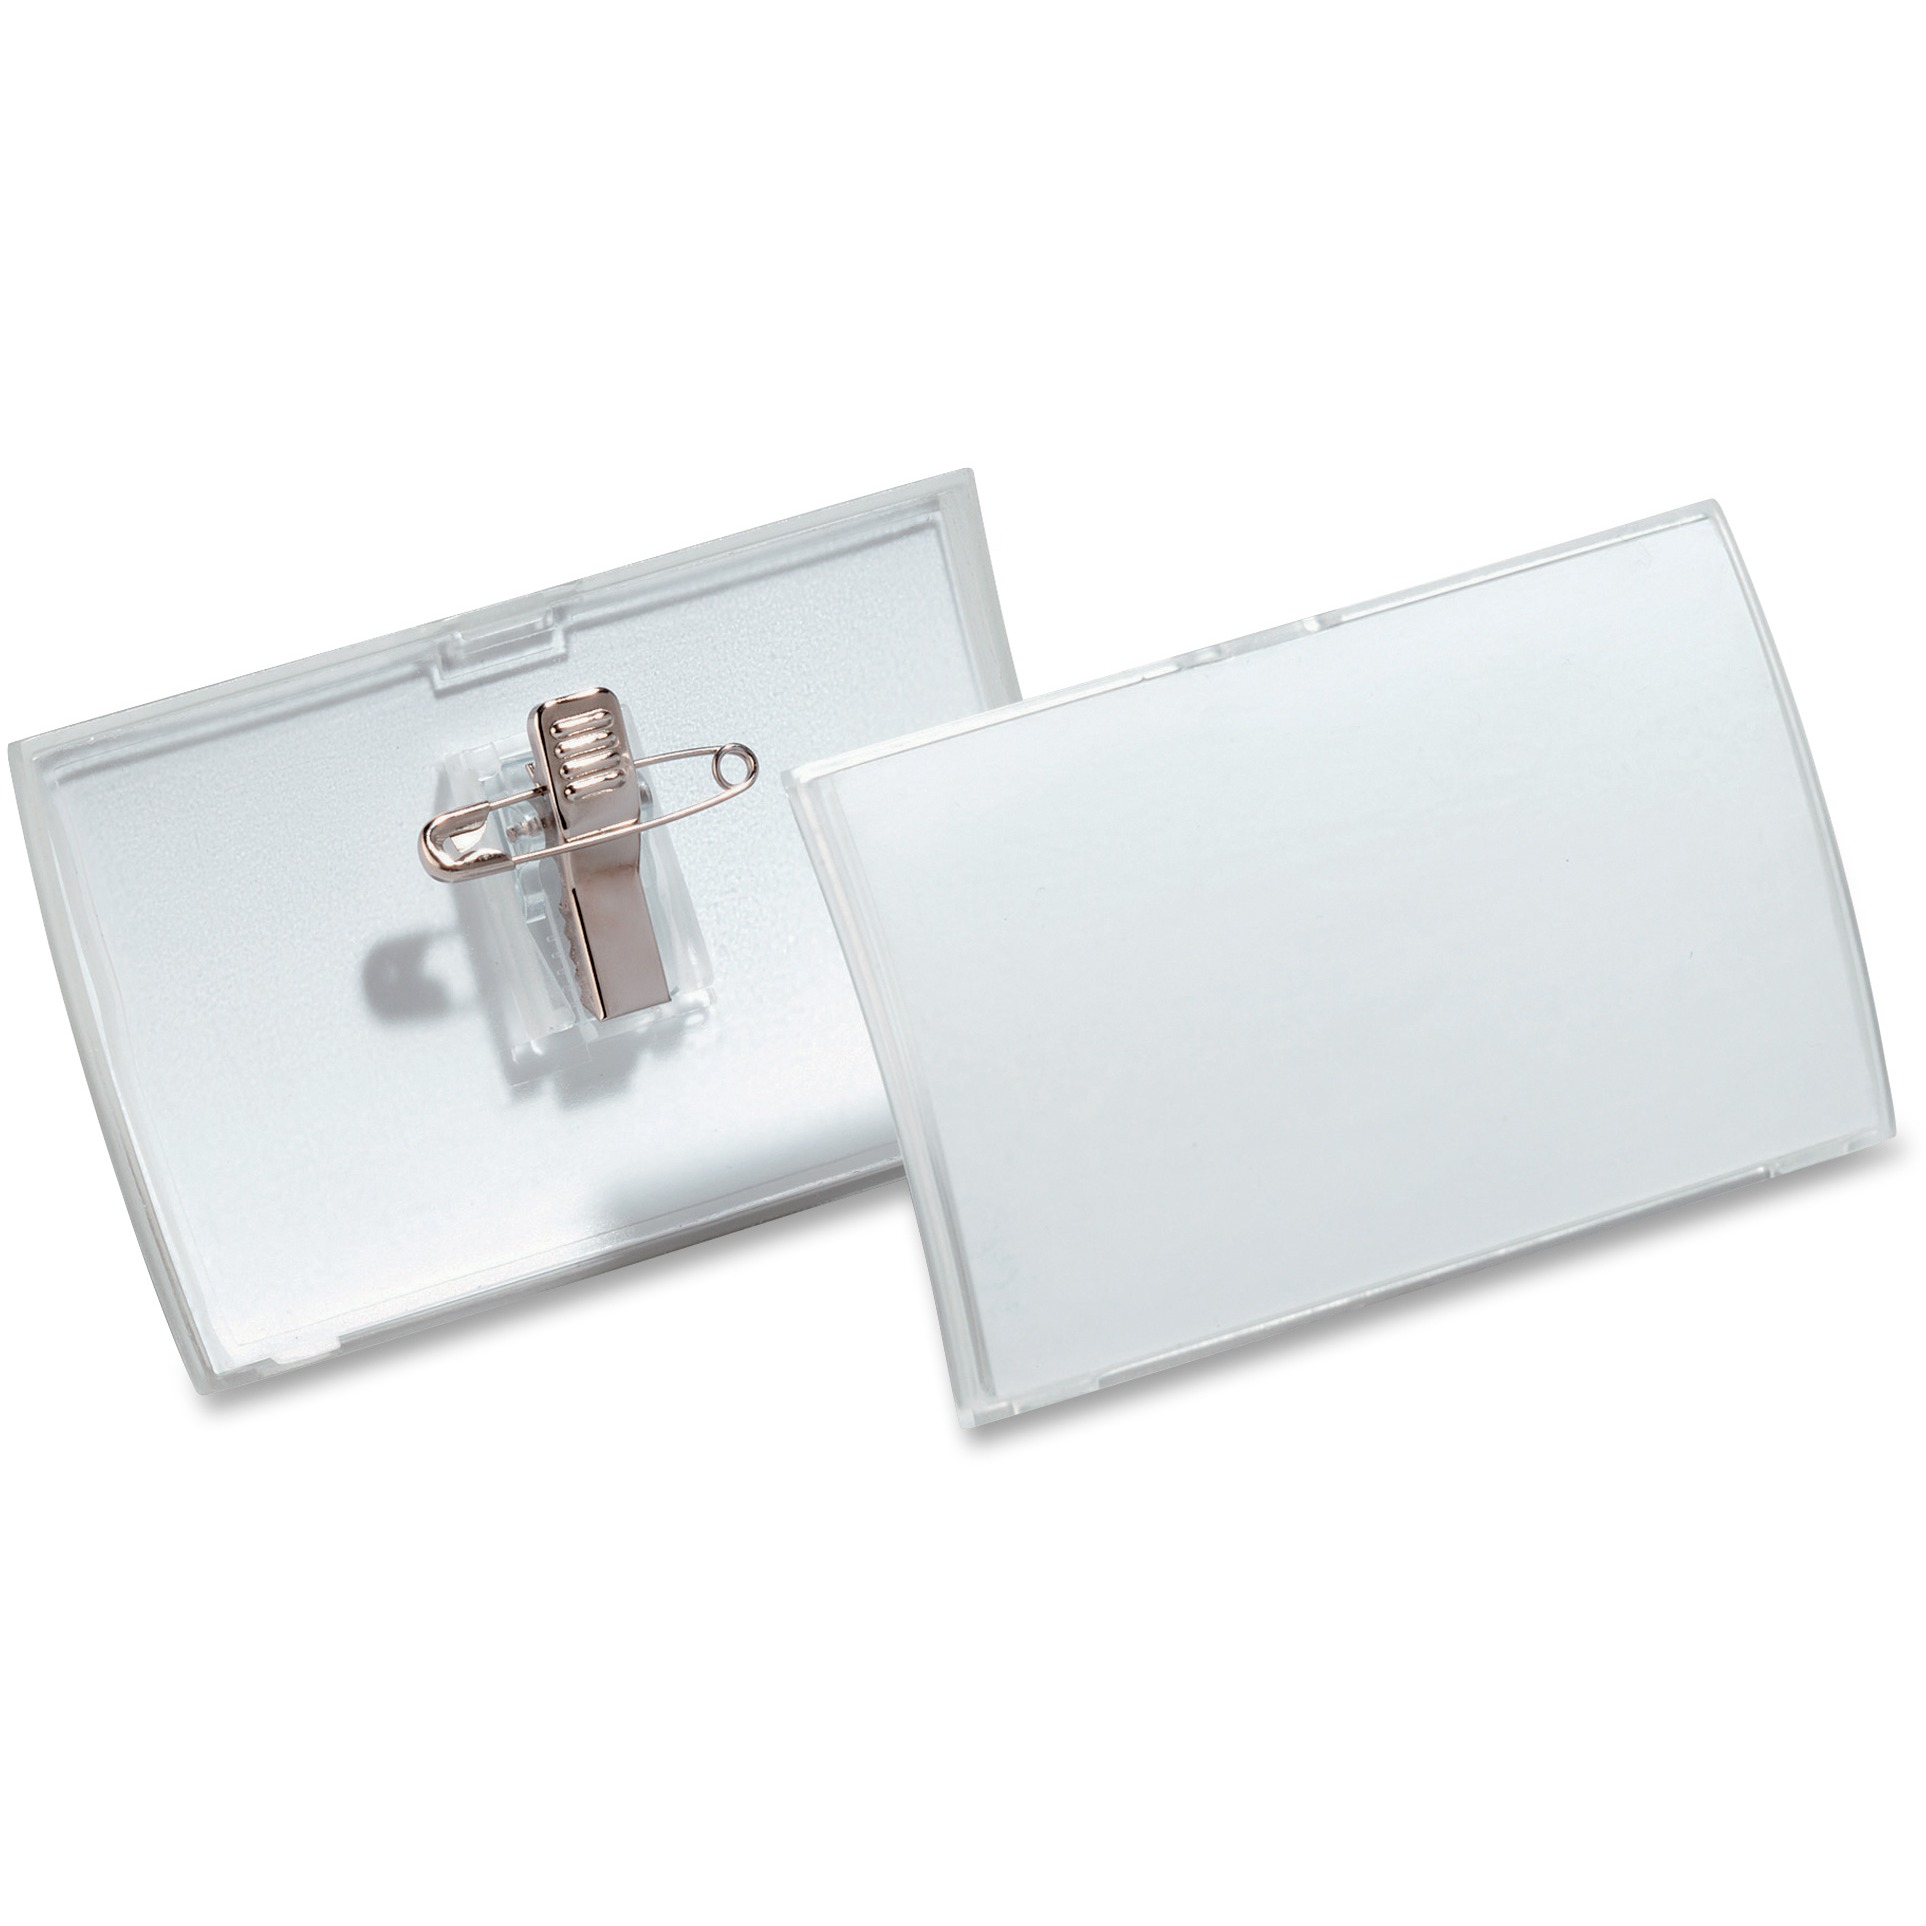 Click-Fold Convex Name Badge Holder, Combi-Clip, 3 3/4w x 2 1/4h, Clear, 25/Pk